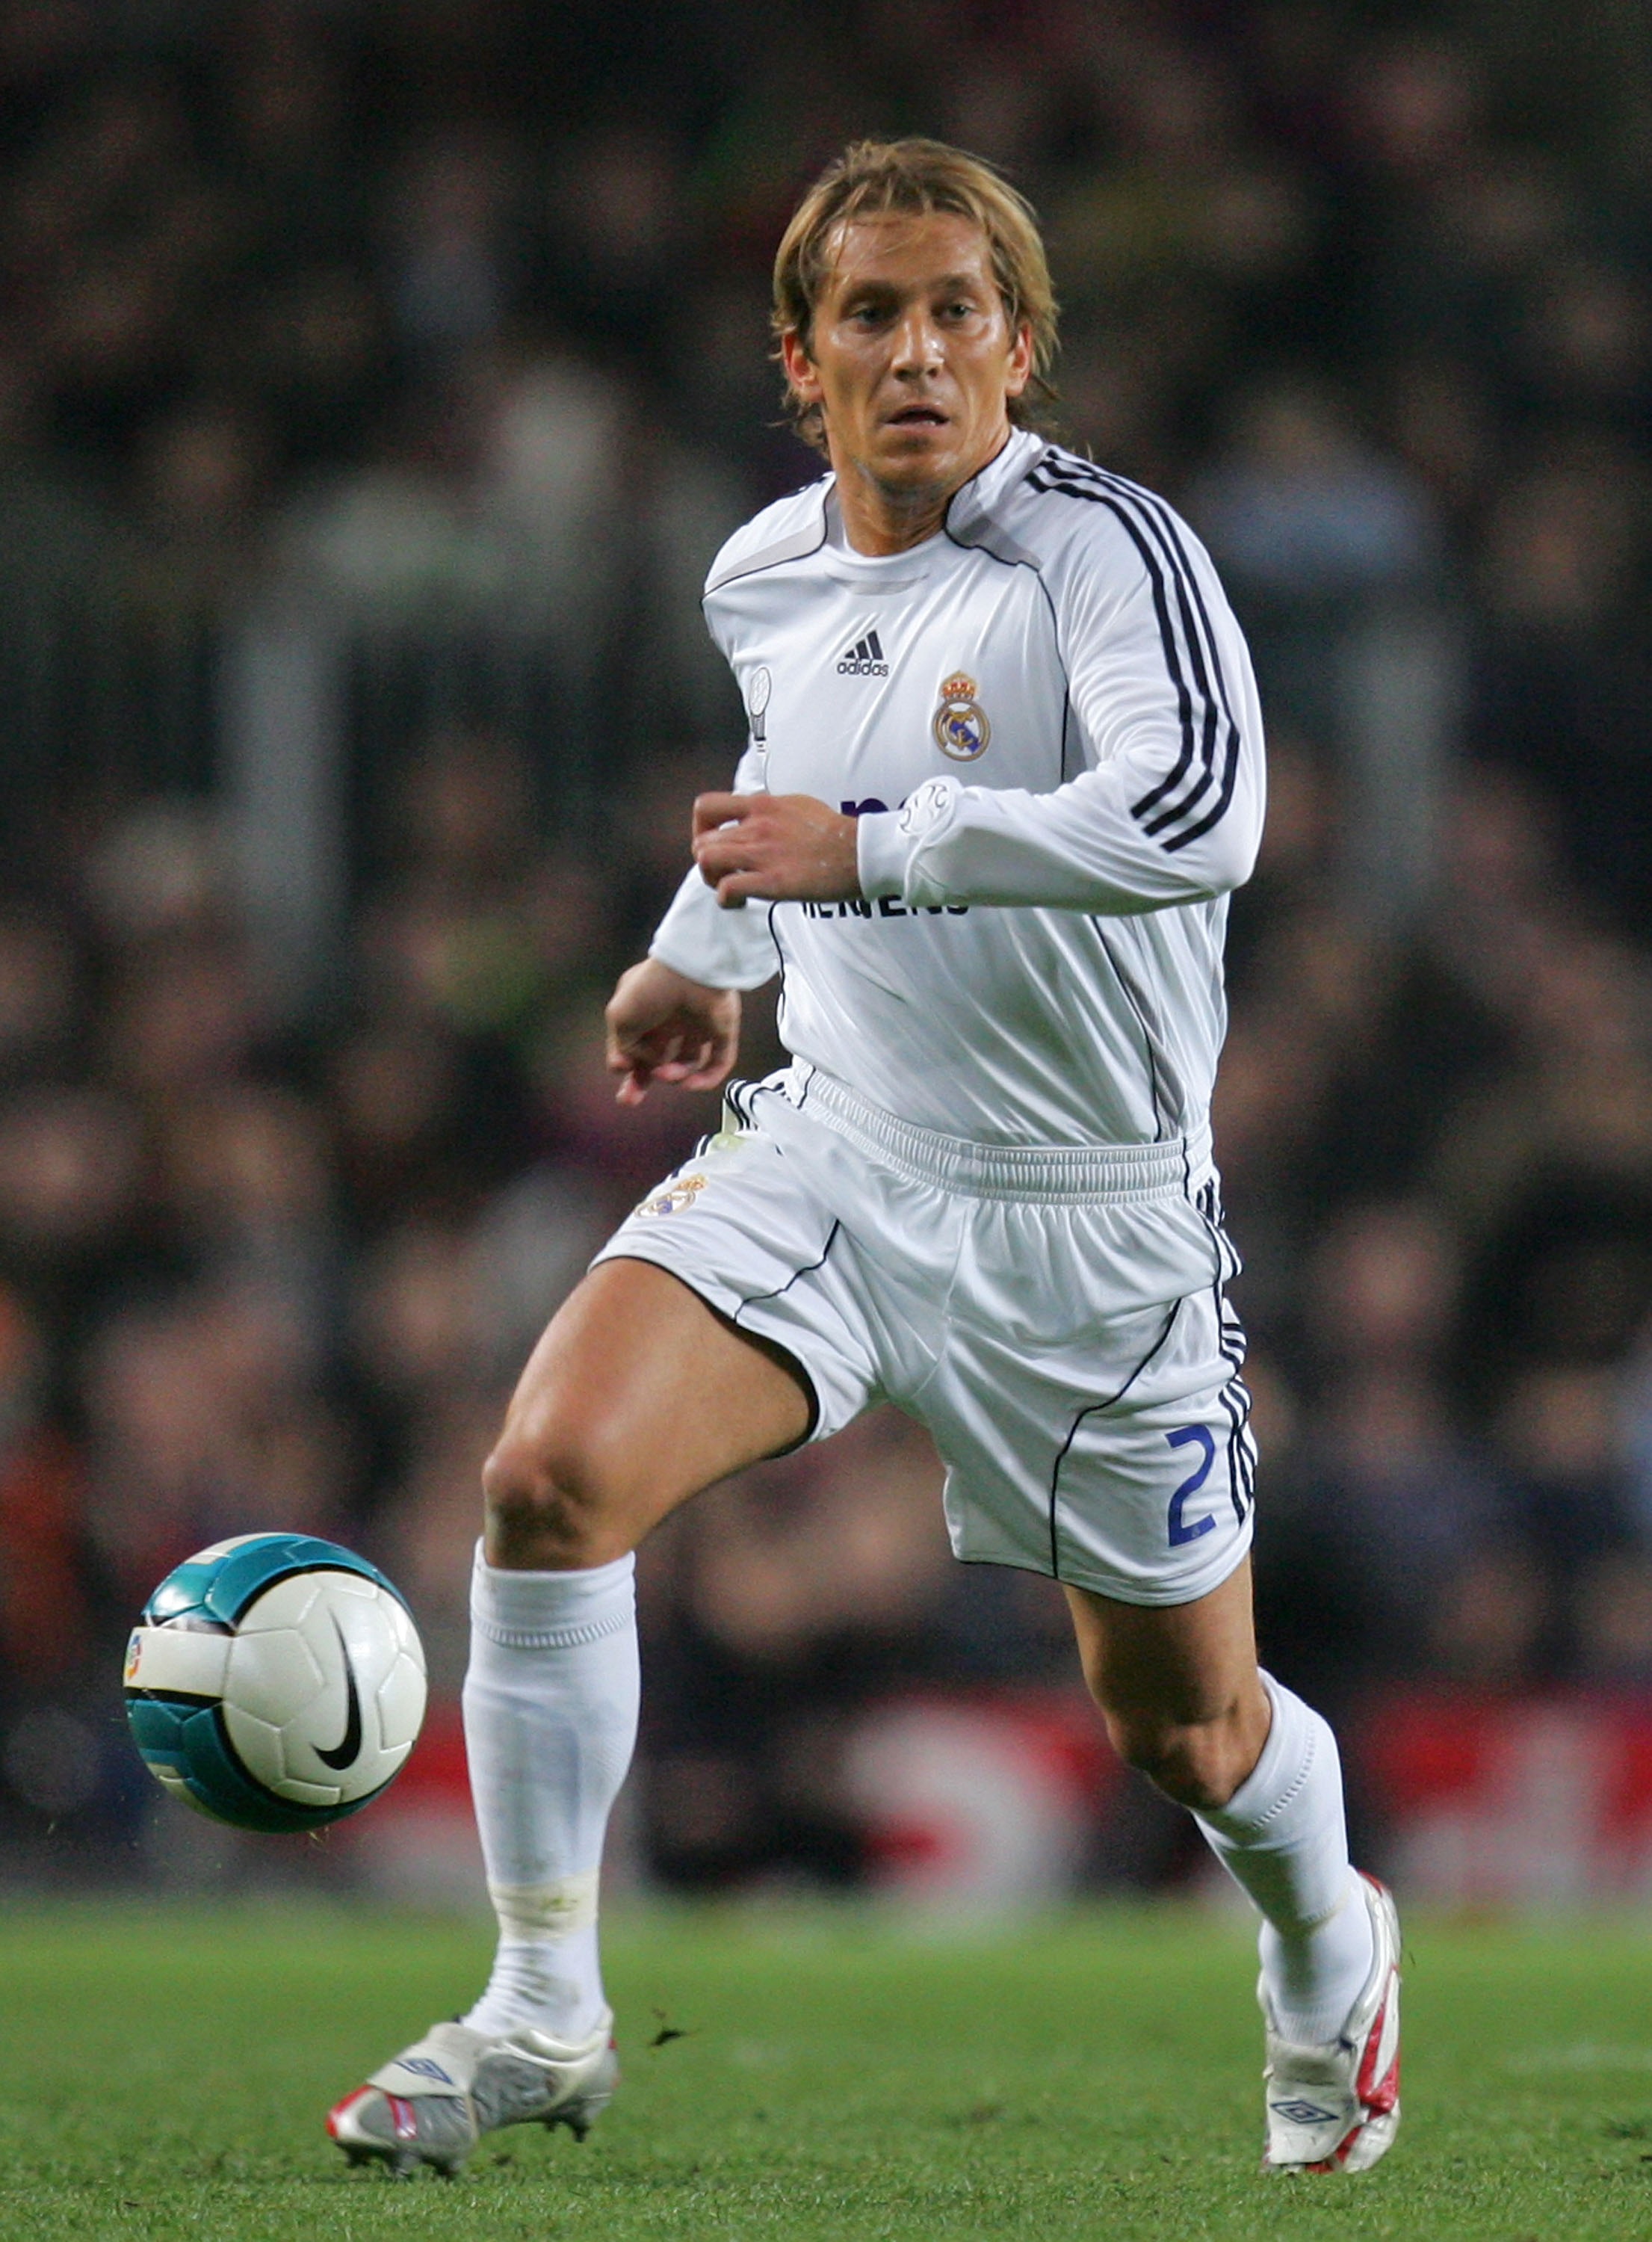 76455bfb380 Michel Salgado began his professional career with hometown s Celta Vigo